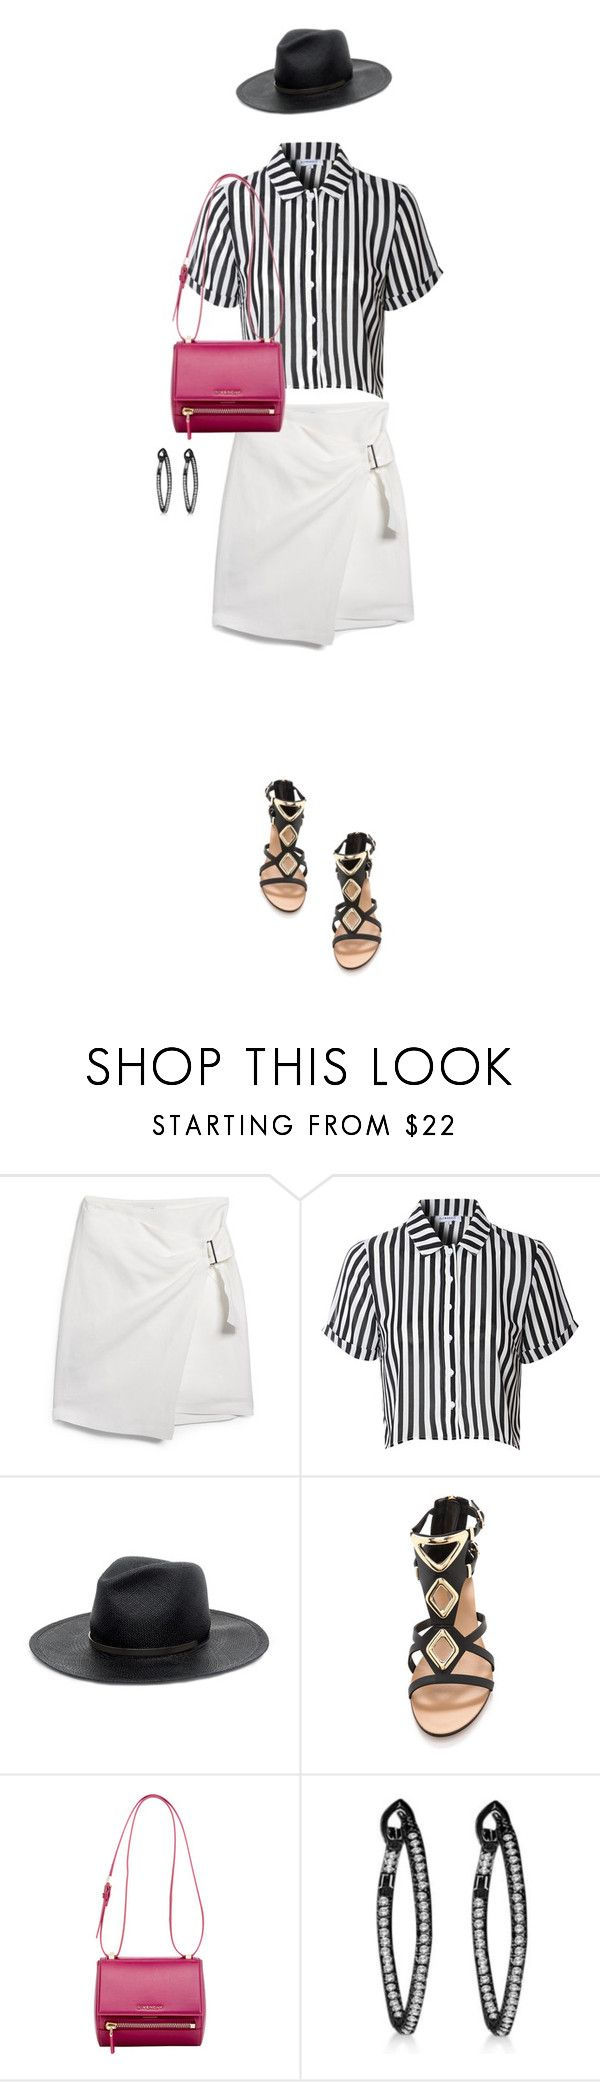 """""""White Skirt"""" by justjules2332 ❤ liked on Polyvore featuring MANGO, Glamorous, Janessa Leone, Carvela Kurt Geiger and Givenchy"""